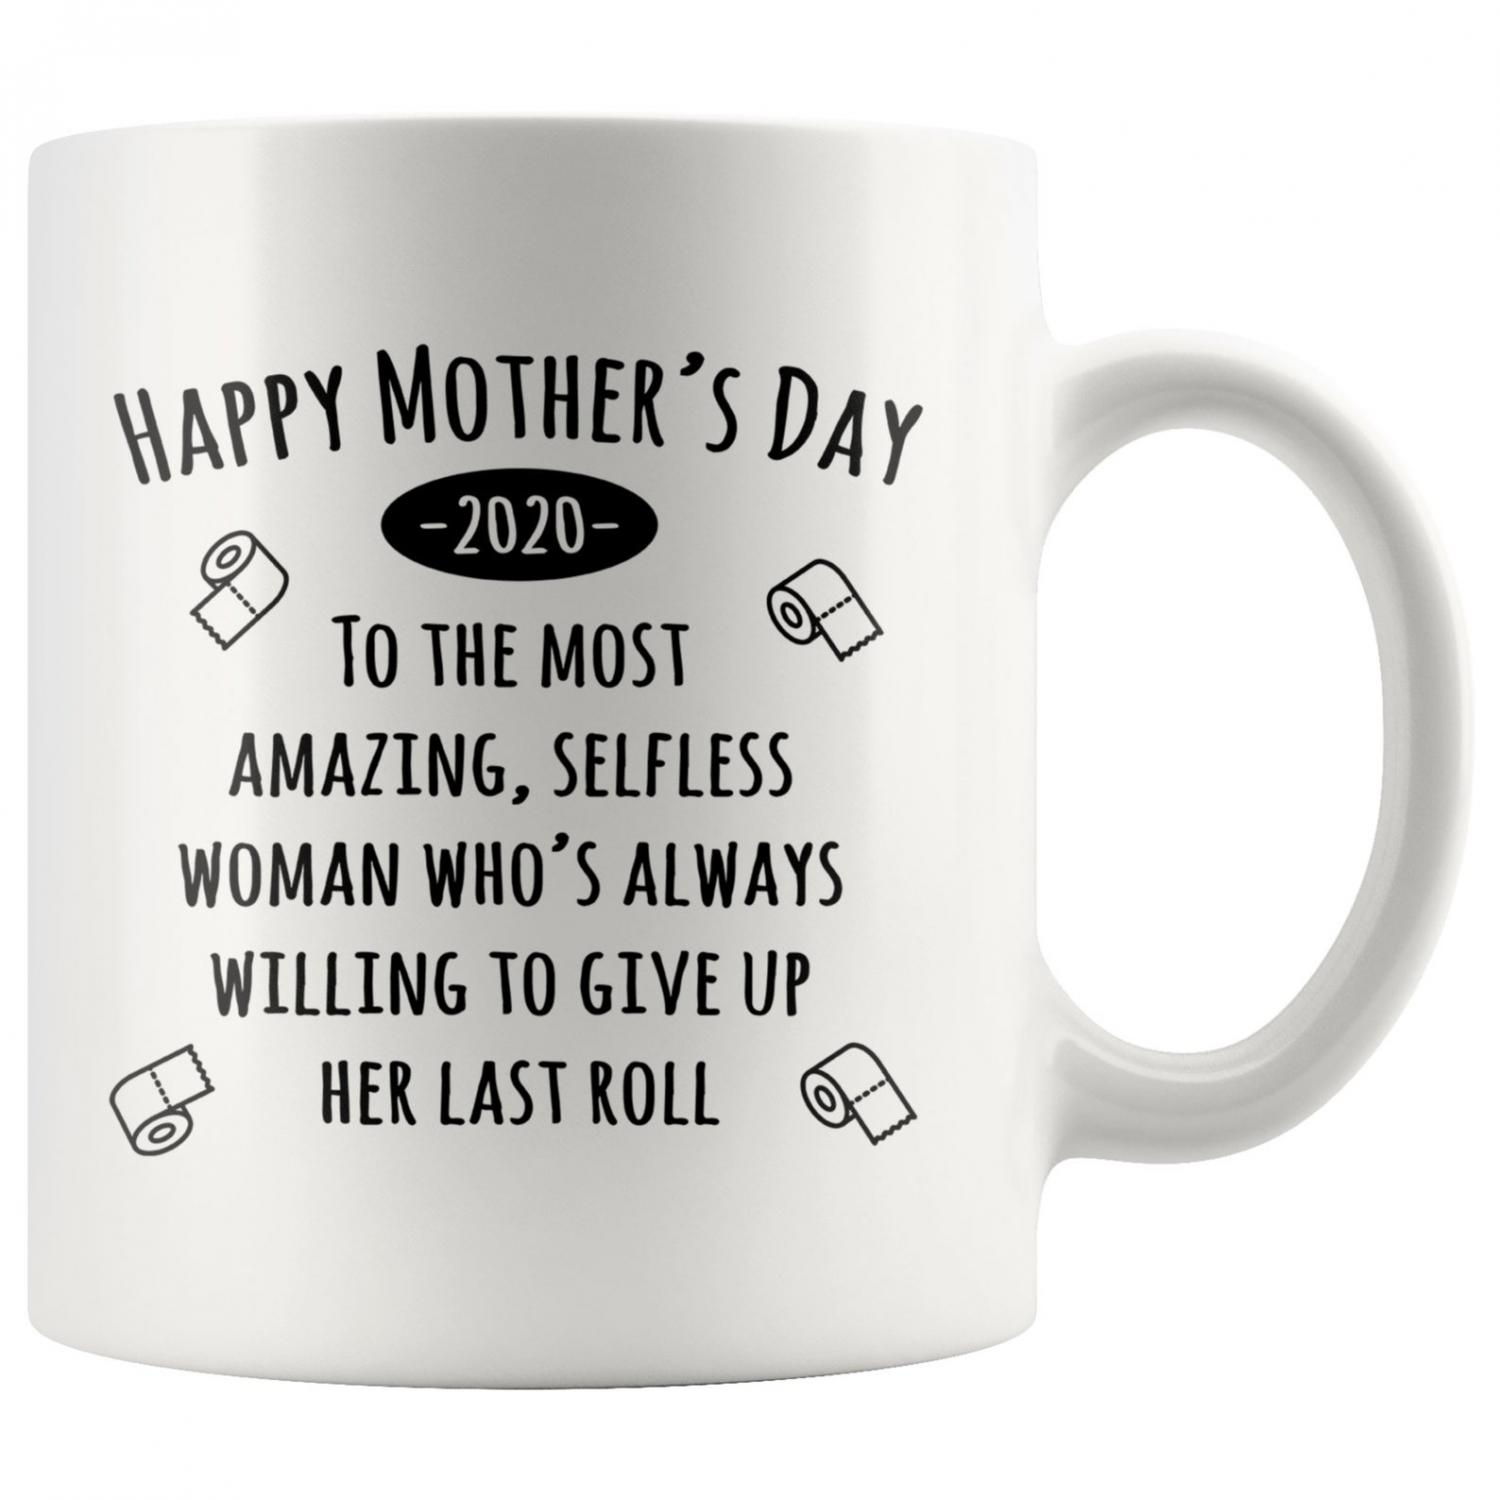 Happy Mothers Day - To the most amazing selfless woman who's always willing to give up her last roll (of toilet paper) - Funny mothers day coffee mug